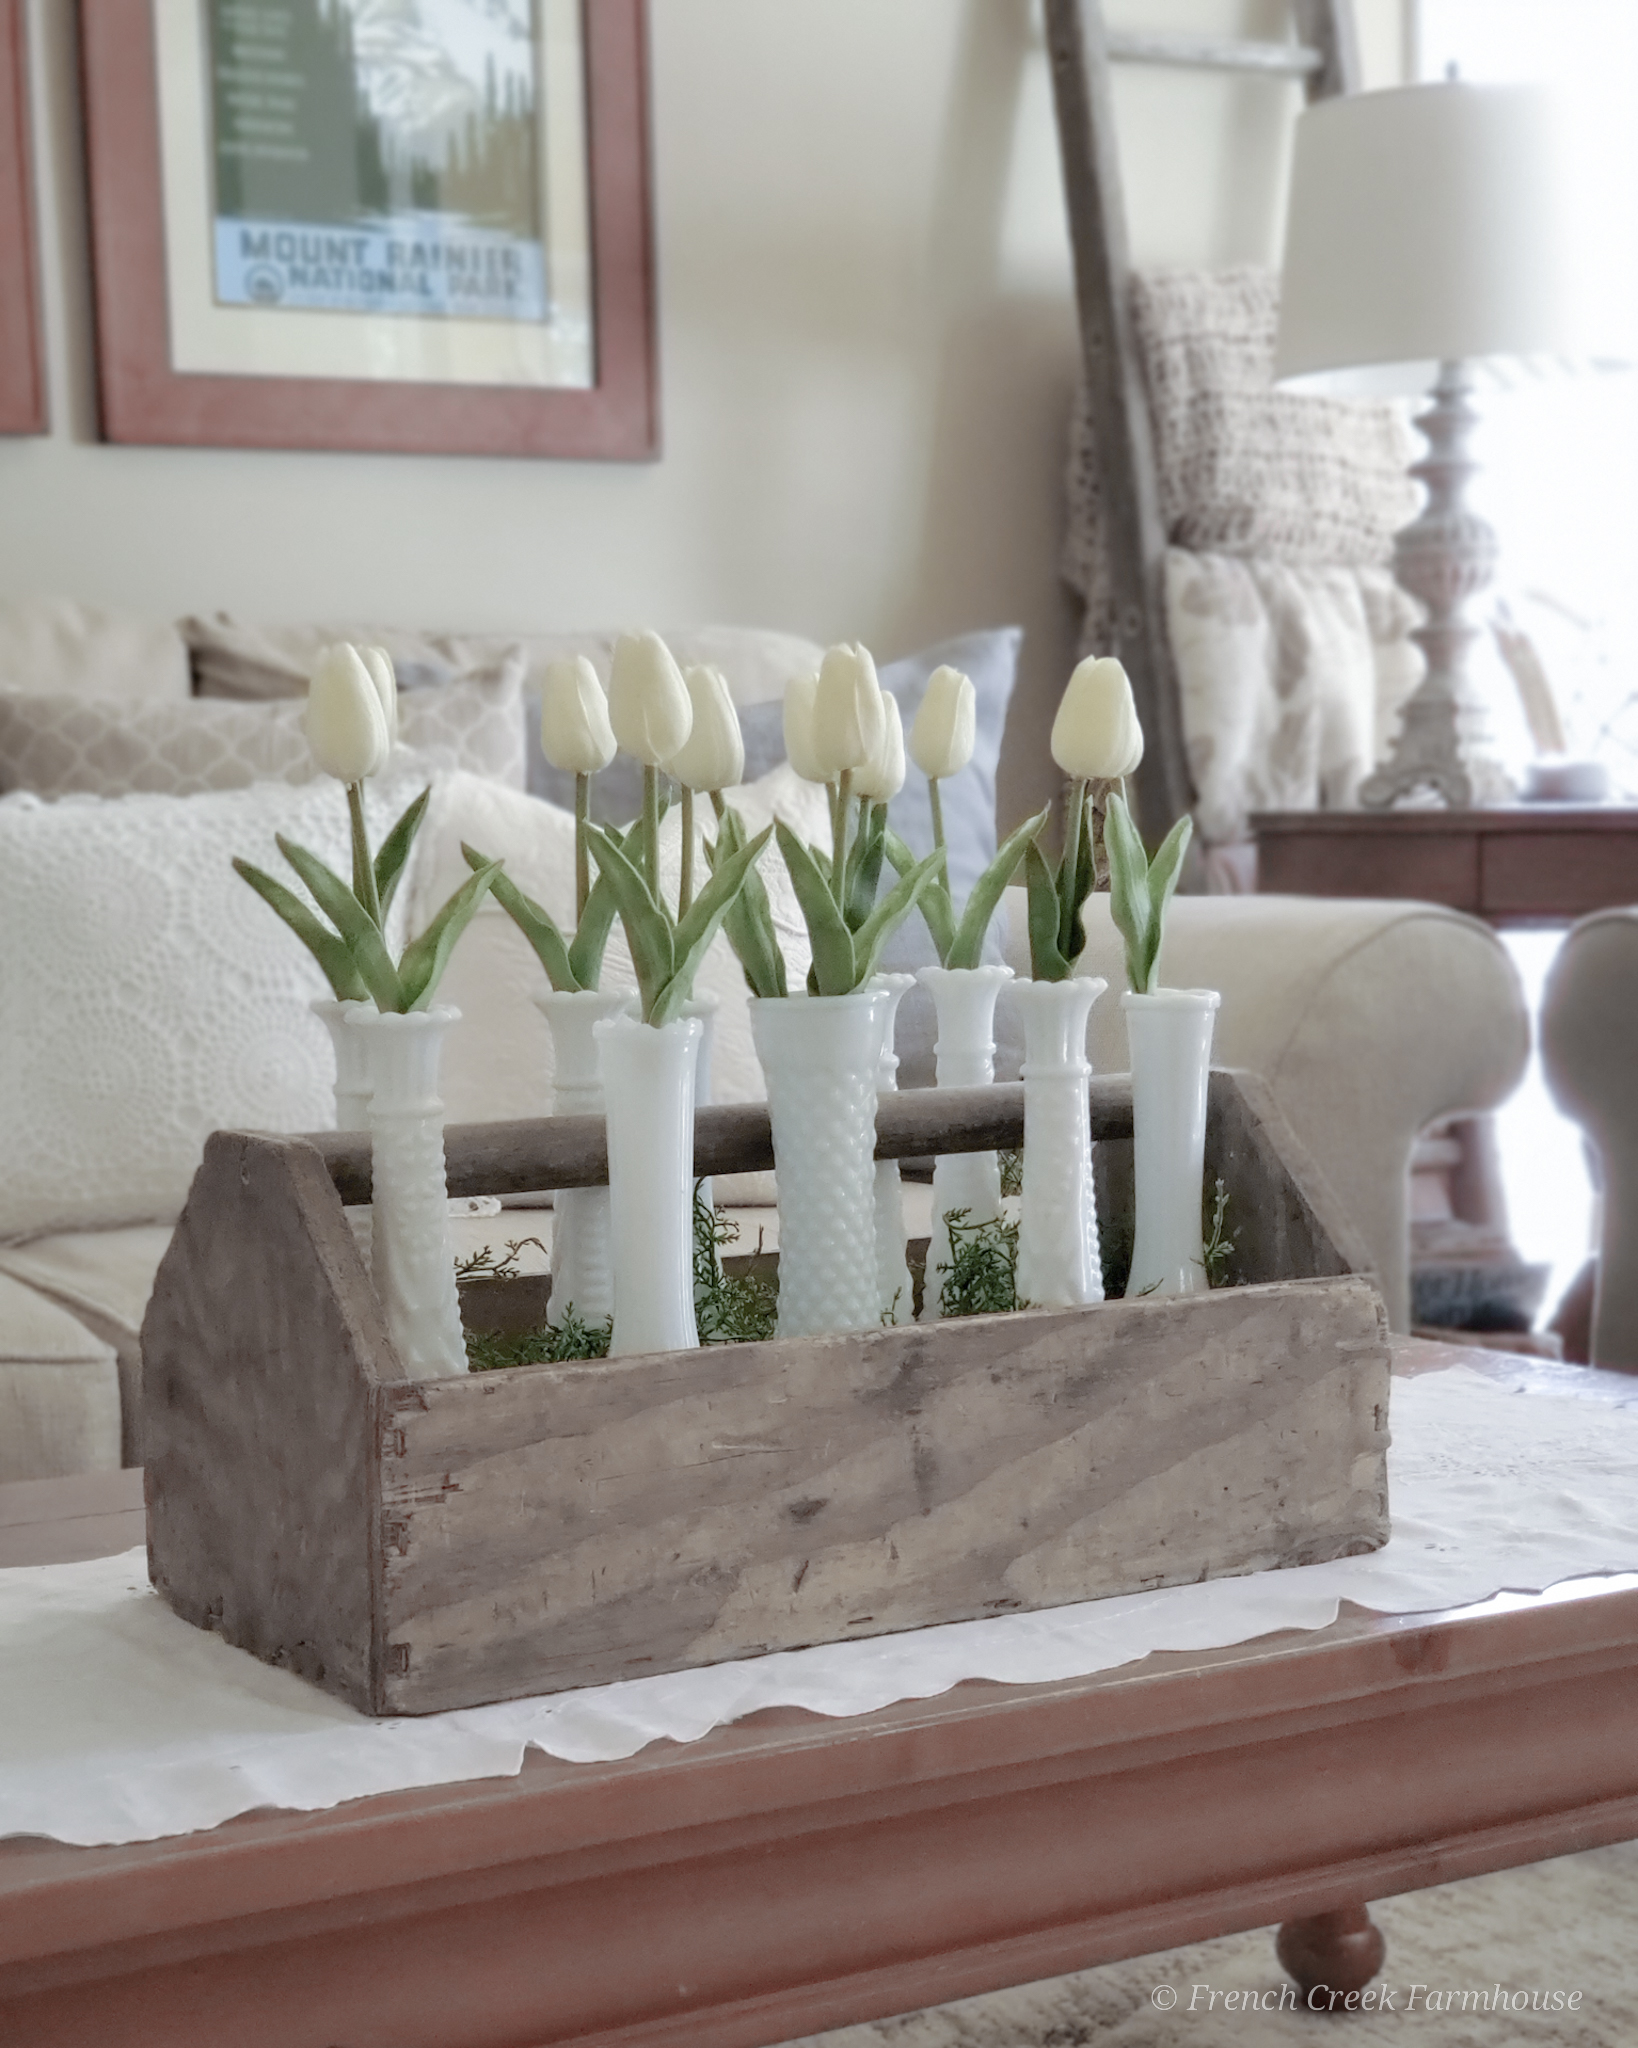 Wood toolbox filled with milk glass vases and white tulips